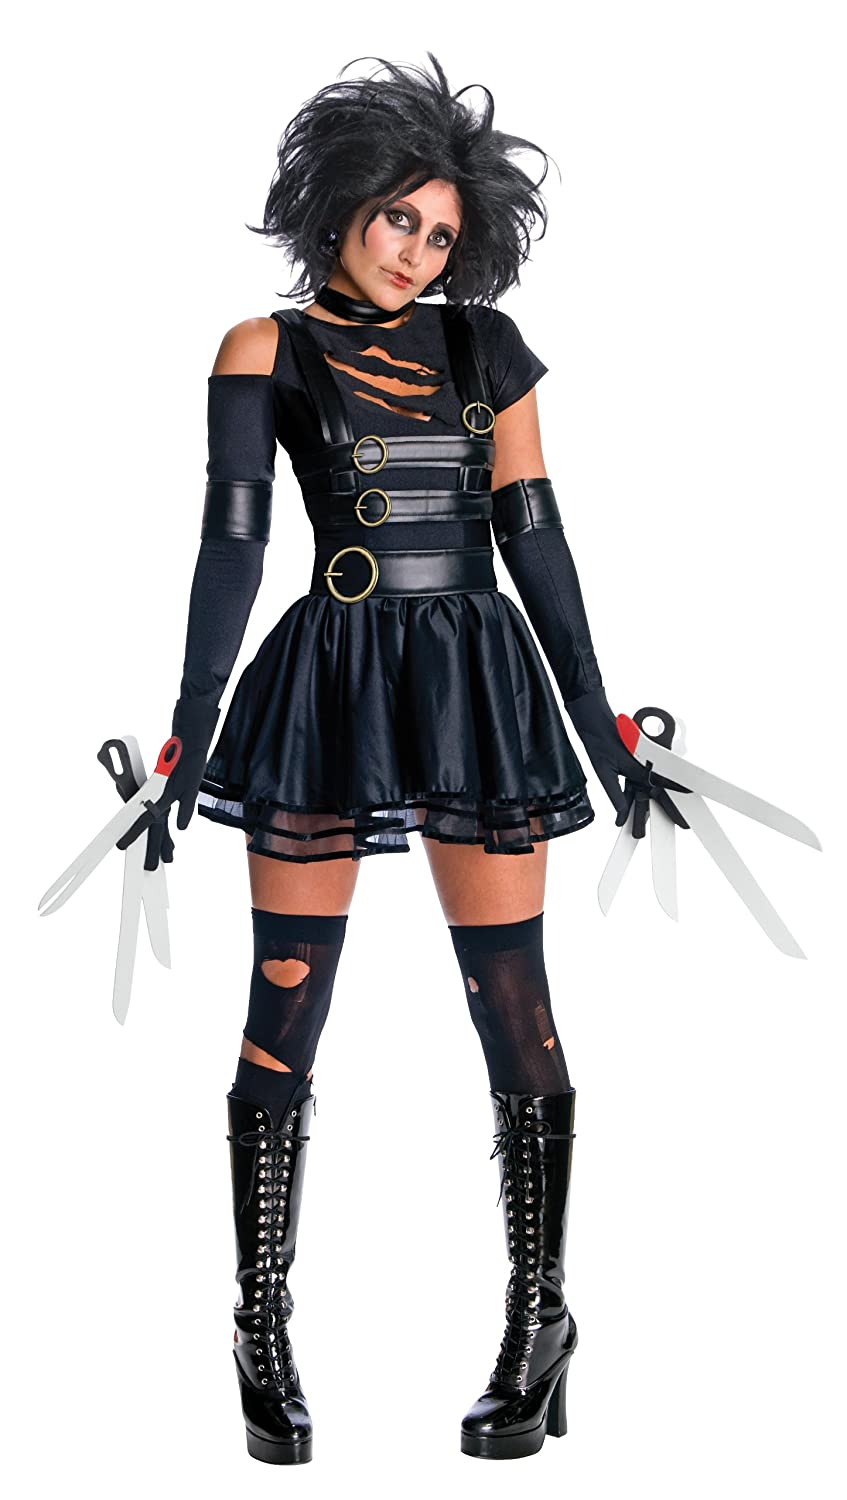 Rubies Costume Secret Wishes Womens Edward Scissorhands Miss Scissorhands Costume Rubies Costumes